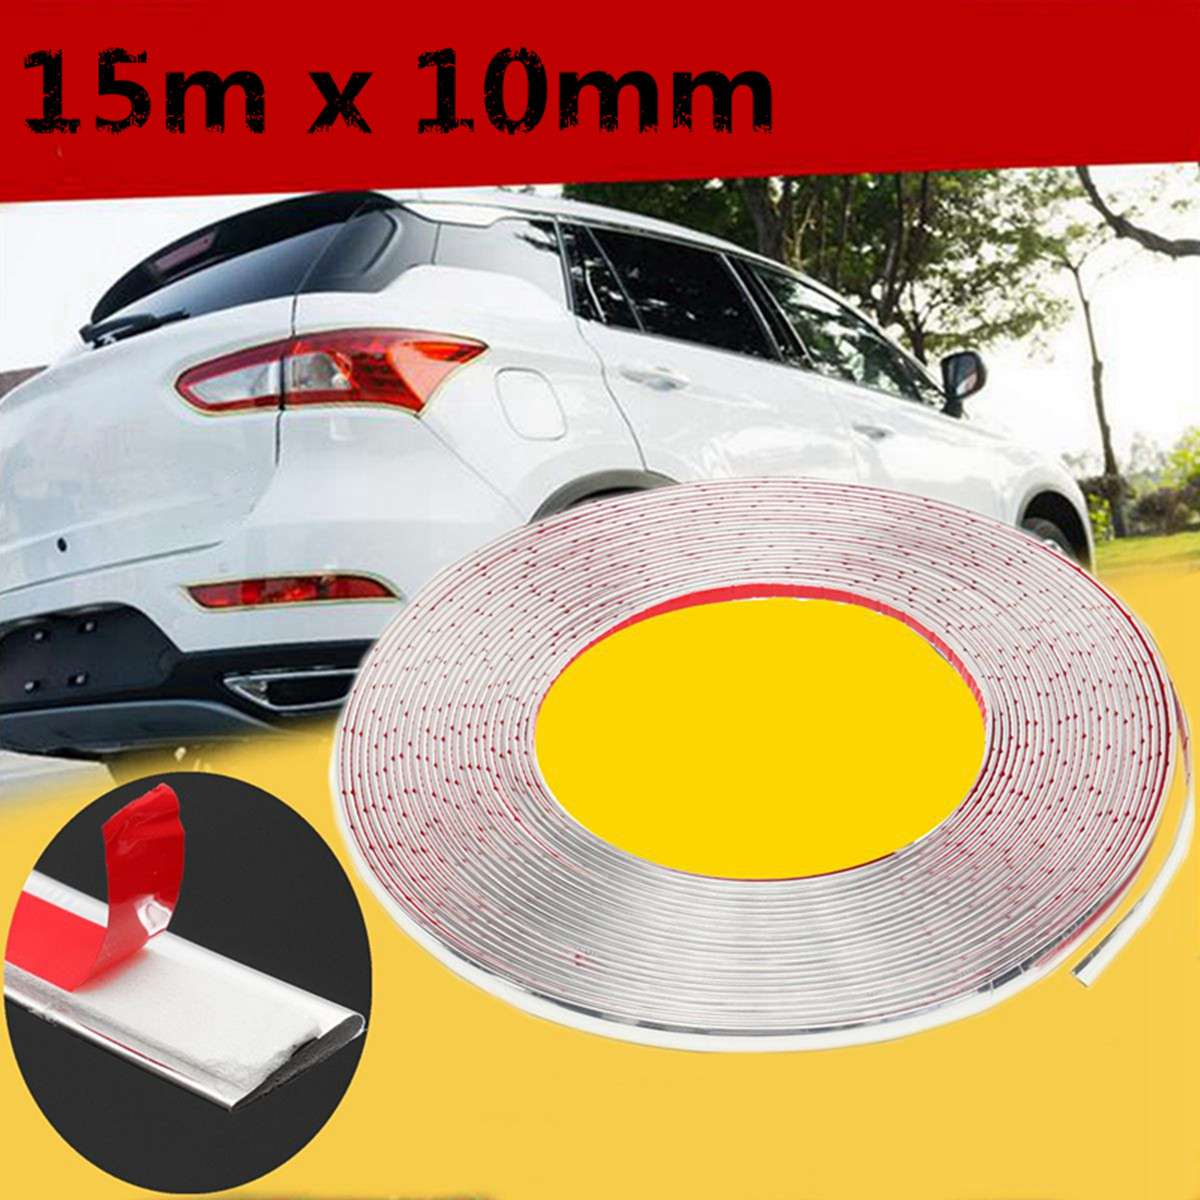 Fits For Most Car 10MM x 15M Car Chrome Moulding Trim Strip Self Adhesive